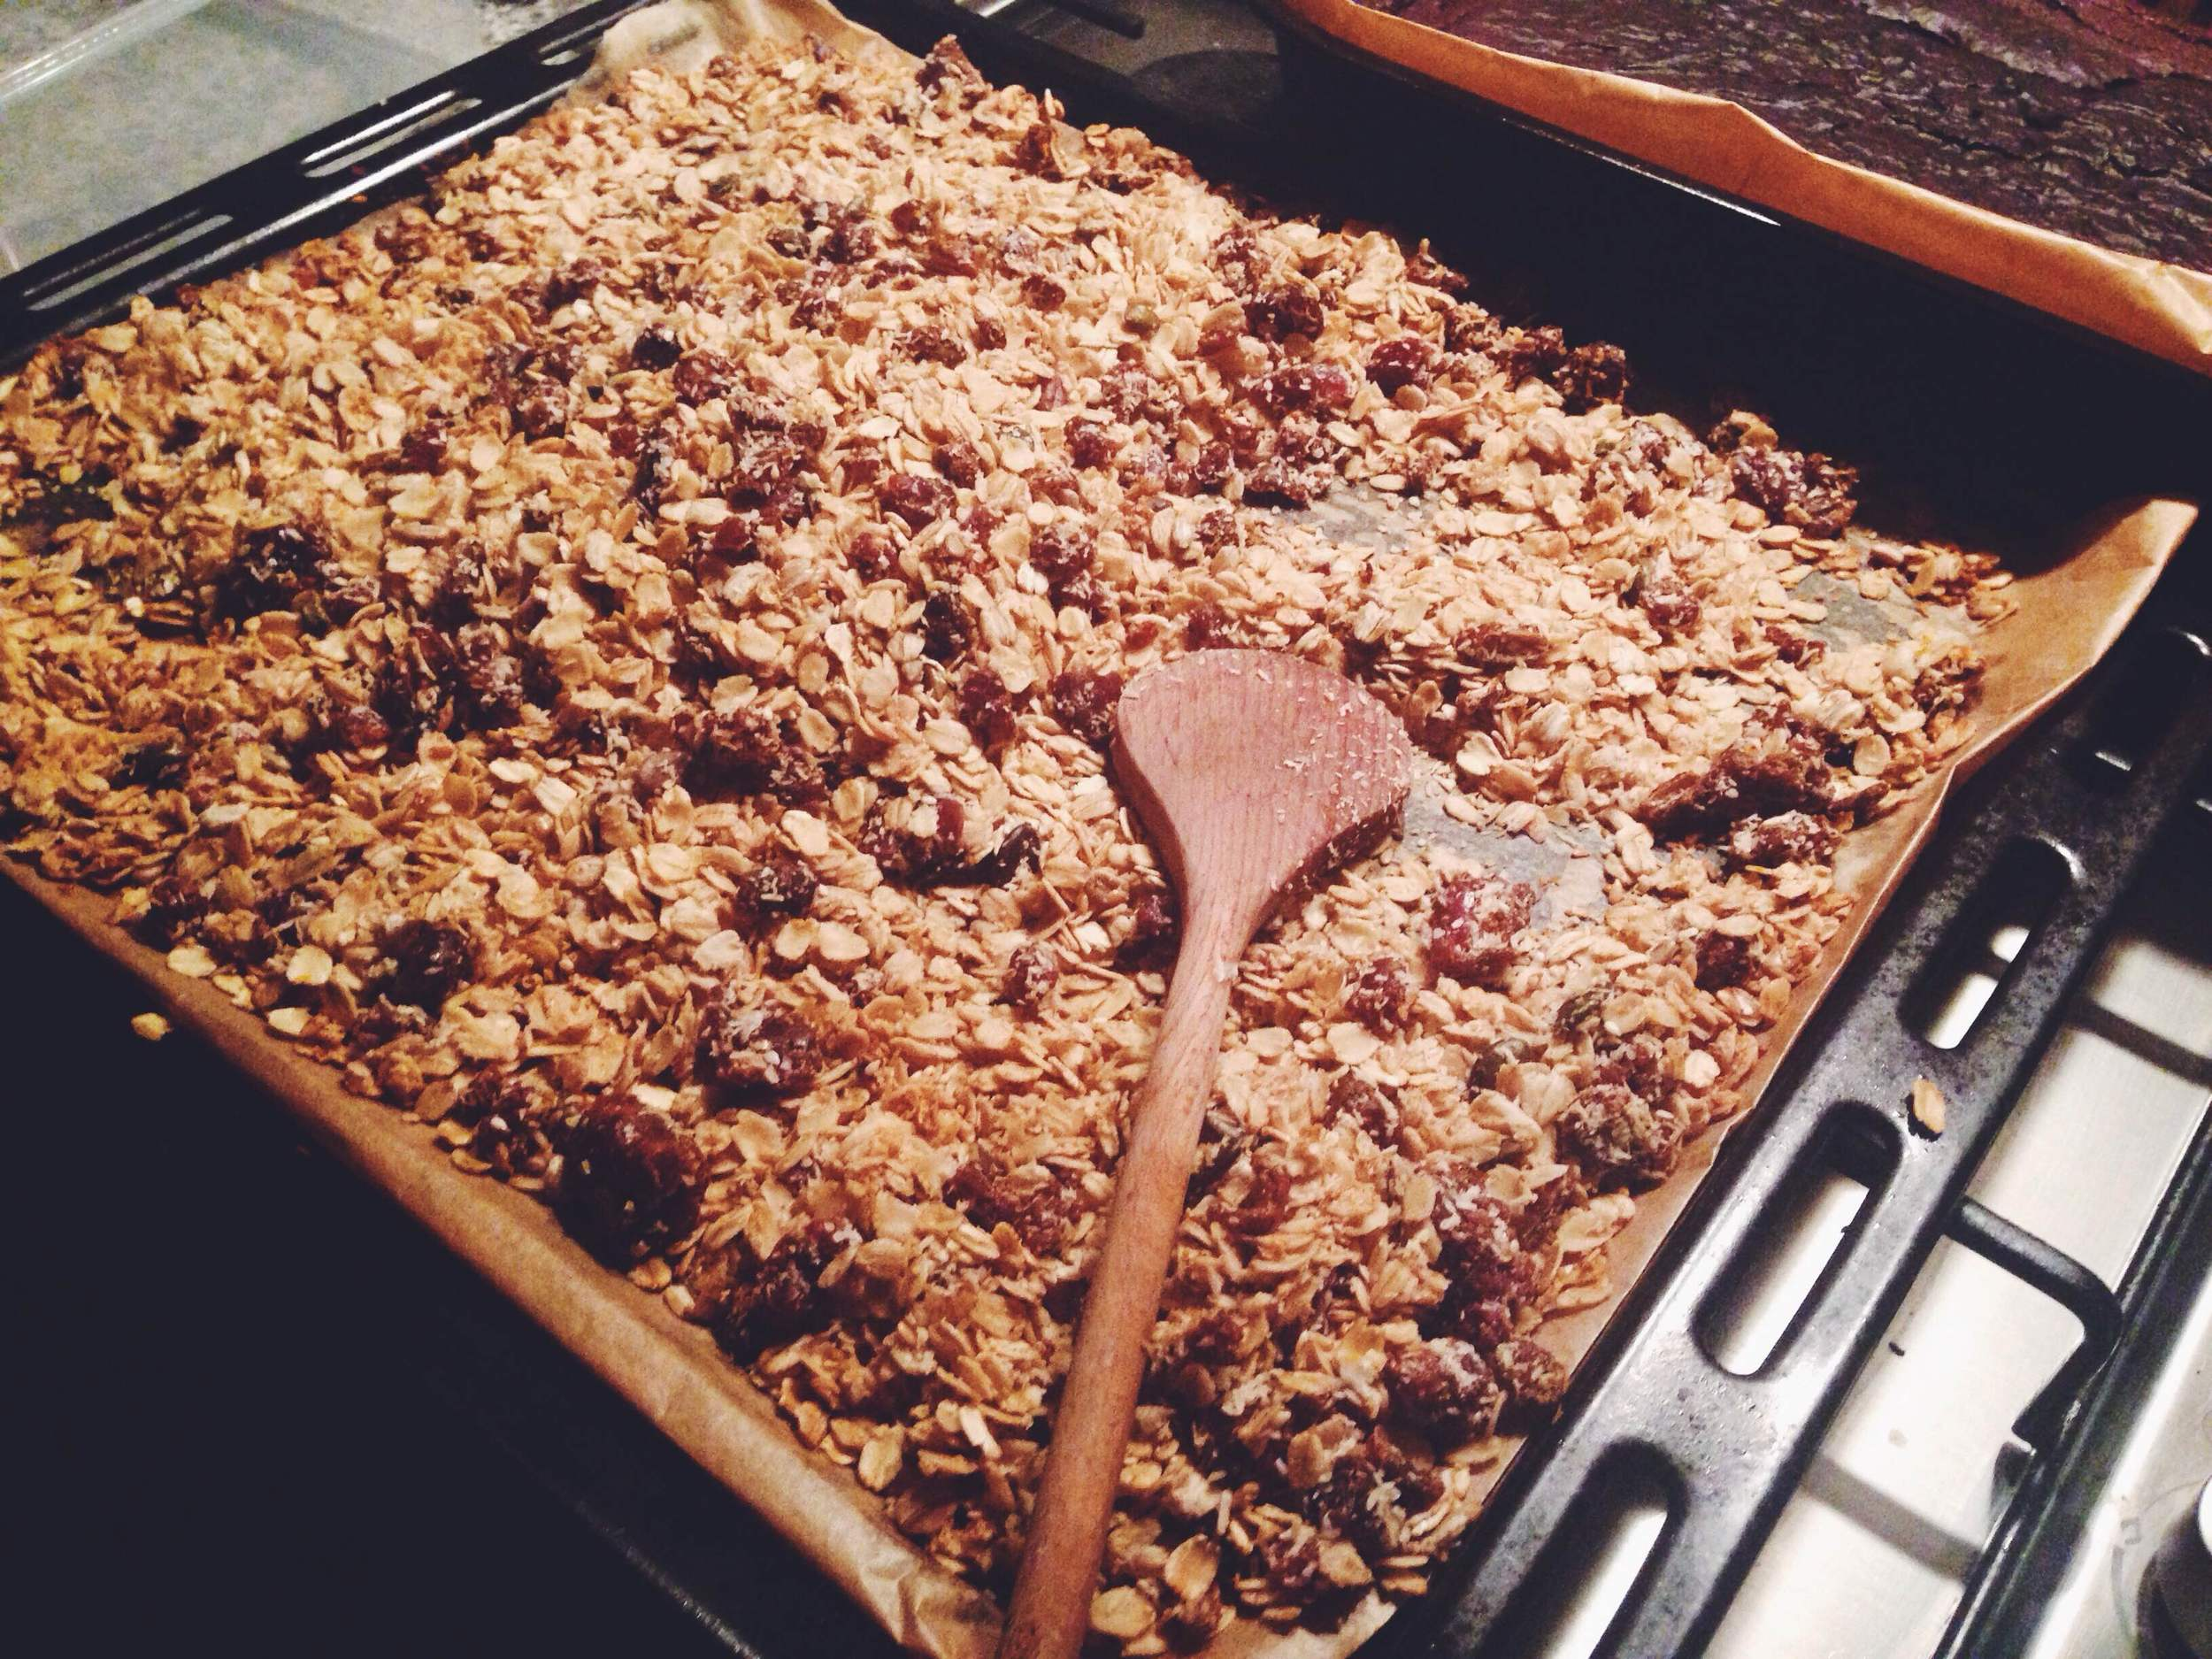 The late night granola factory, open for bizz